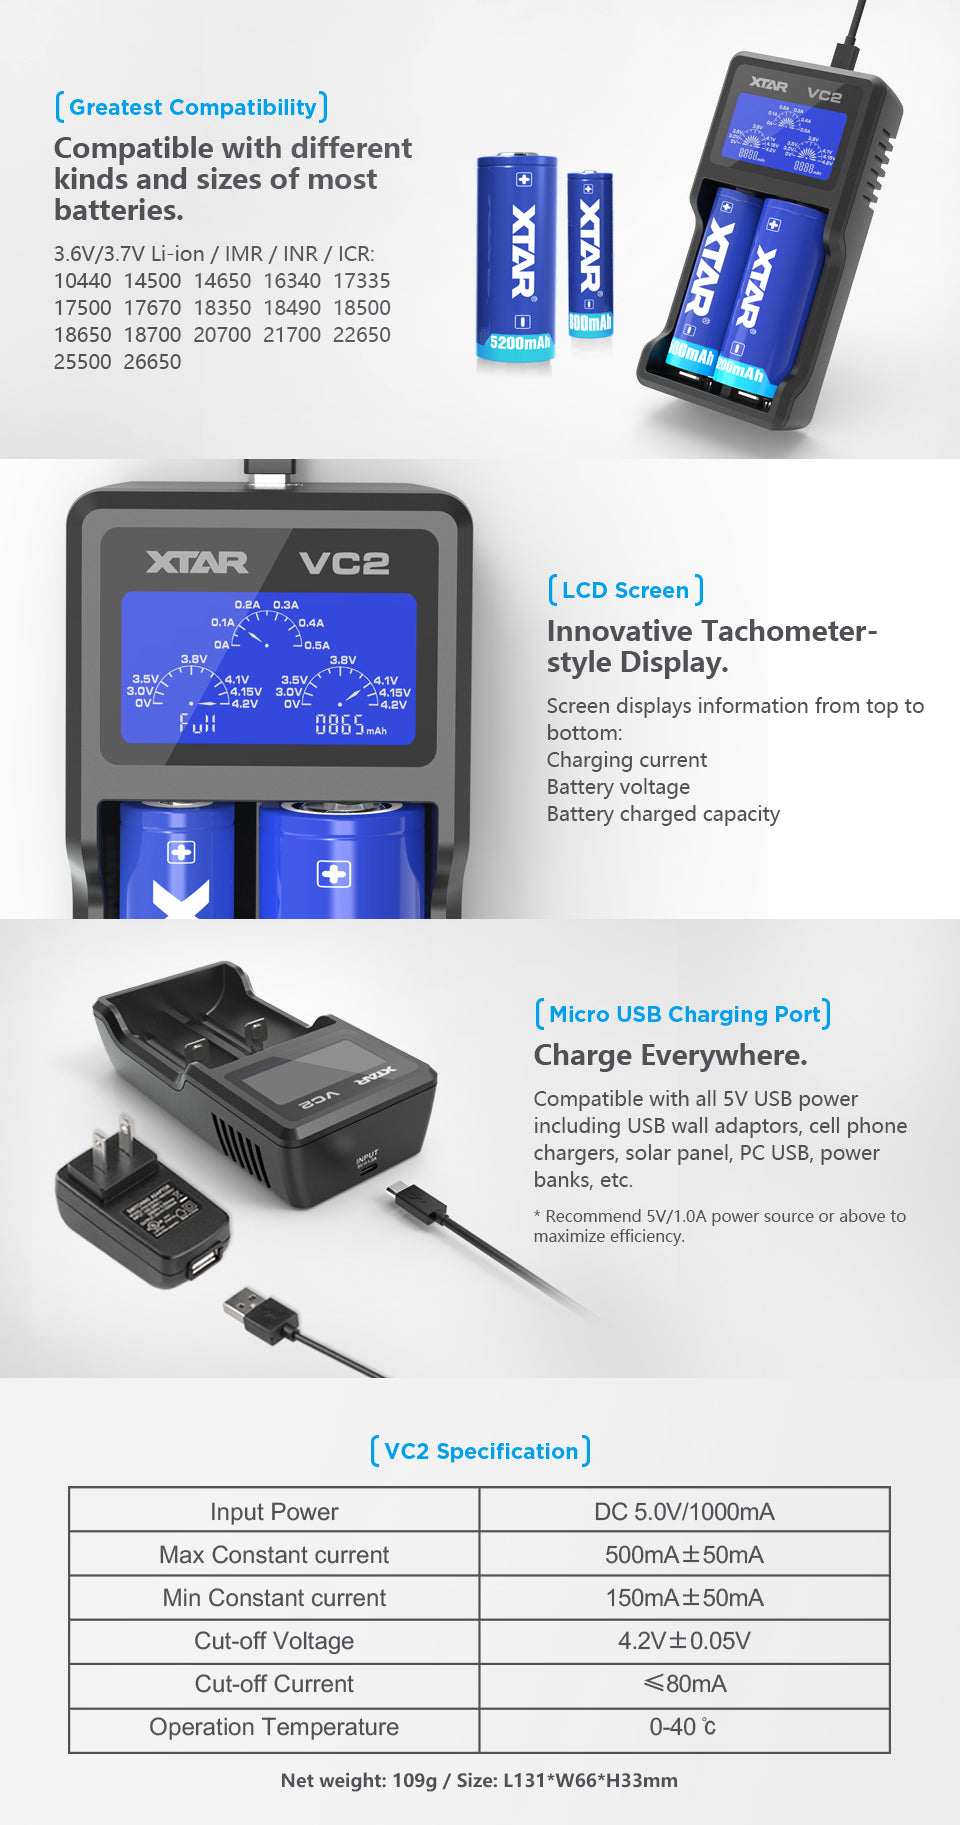 XTAR VC2 2-Bay LCD Screen USB Digital Li-ion/Ni-MH Battery Charger